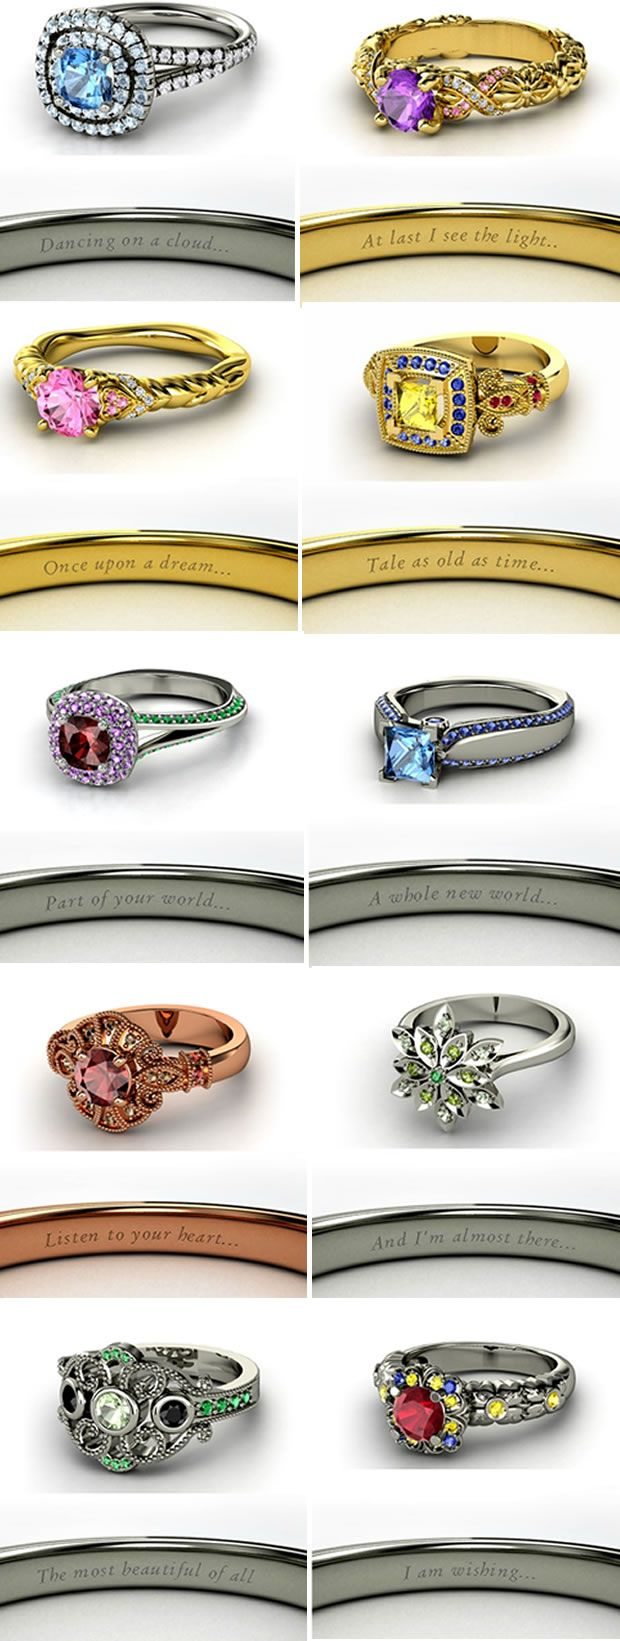 disney inspired engagement rings and wedding rings disney princess wedding rings disney princess engagement rings sleeping beauty source heckyeahdisneymerch tumblr com